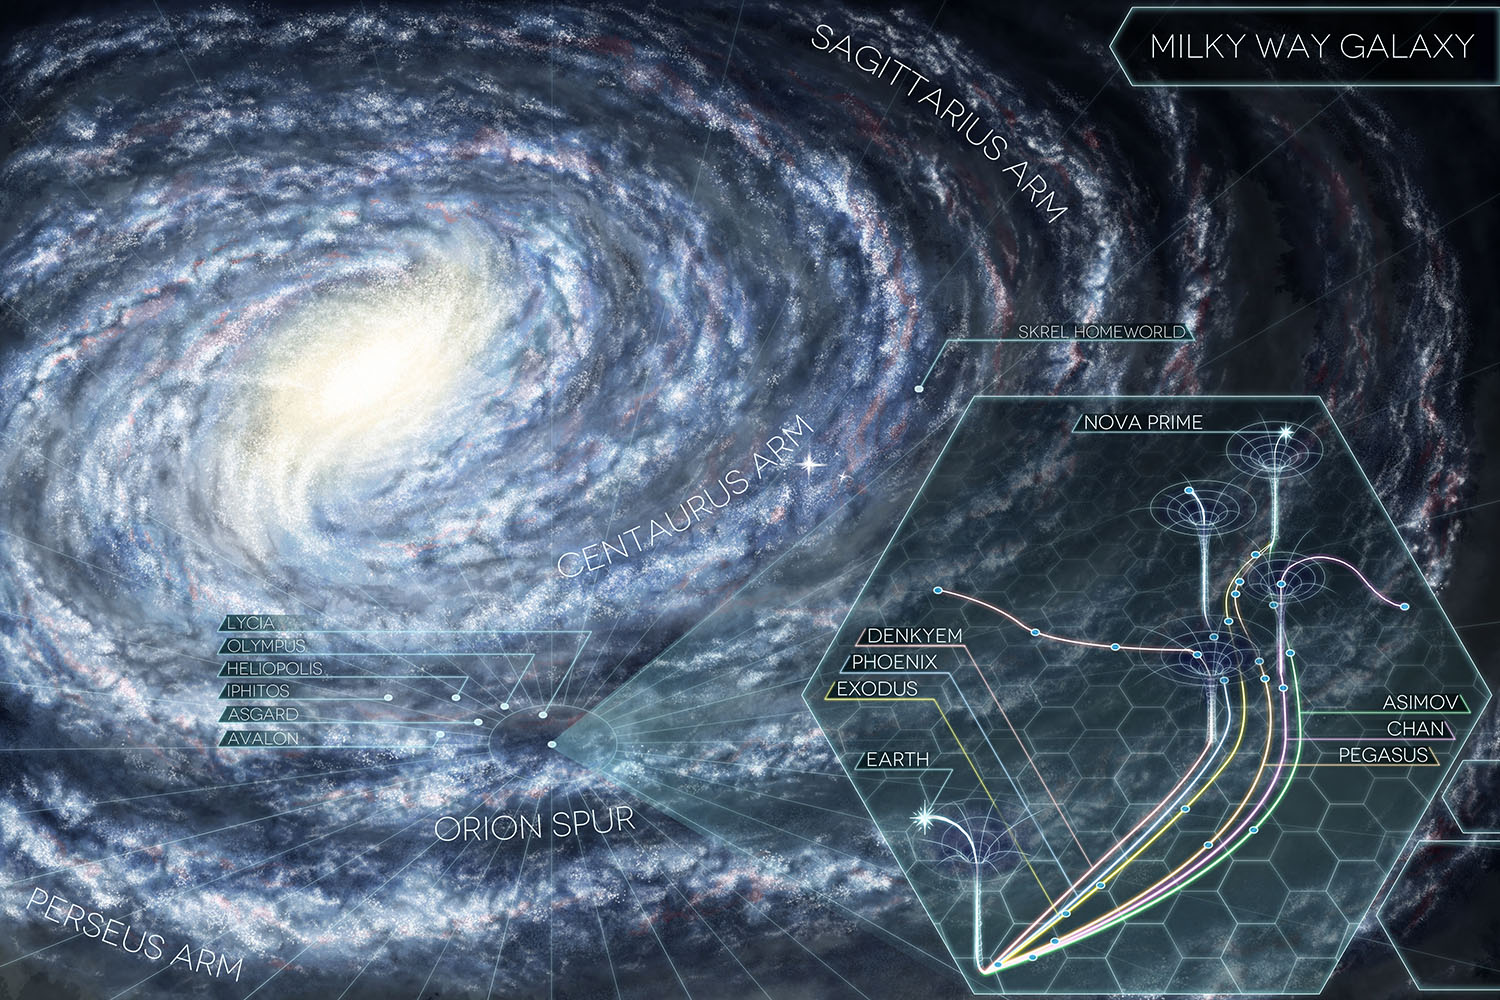 After Earth - Mapping the Galaxy - Fantastic Maps on sun map, lightning map, milky way map, spectrum map, classic map, science map, astronomy map, world map, custom map, supreme map, universe map, venus map, solar system map, usa map, hotspot map, asteroid map, continents map, google map, constellation map, local supercluster map,